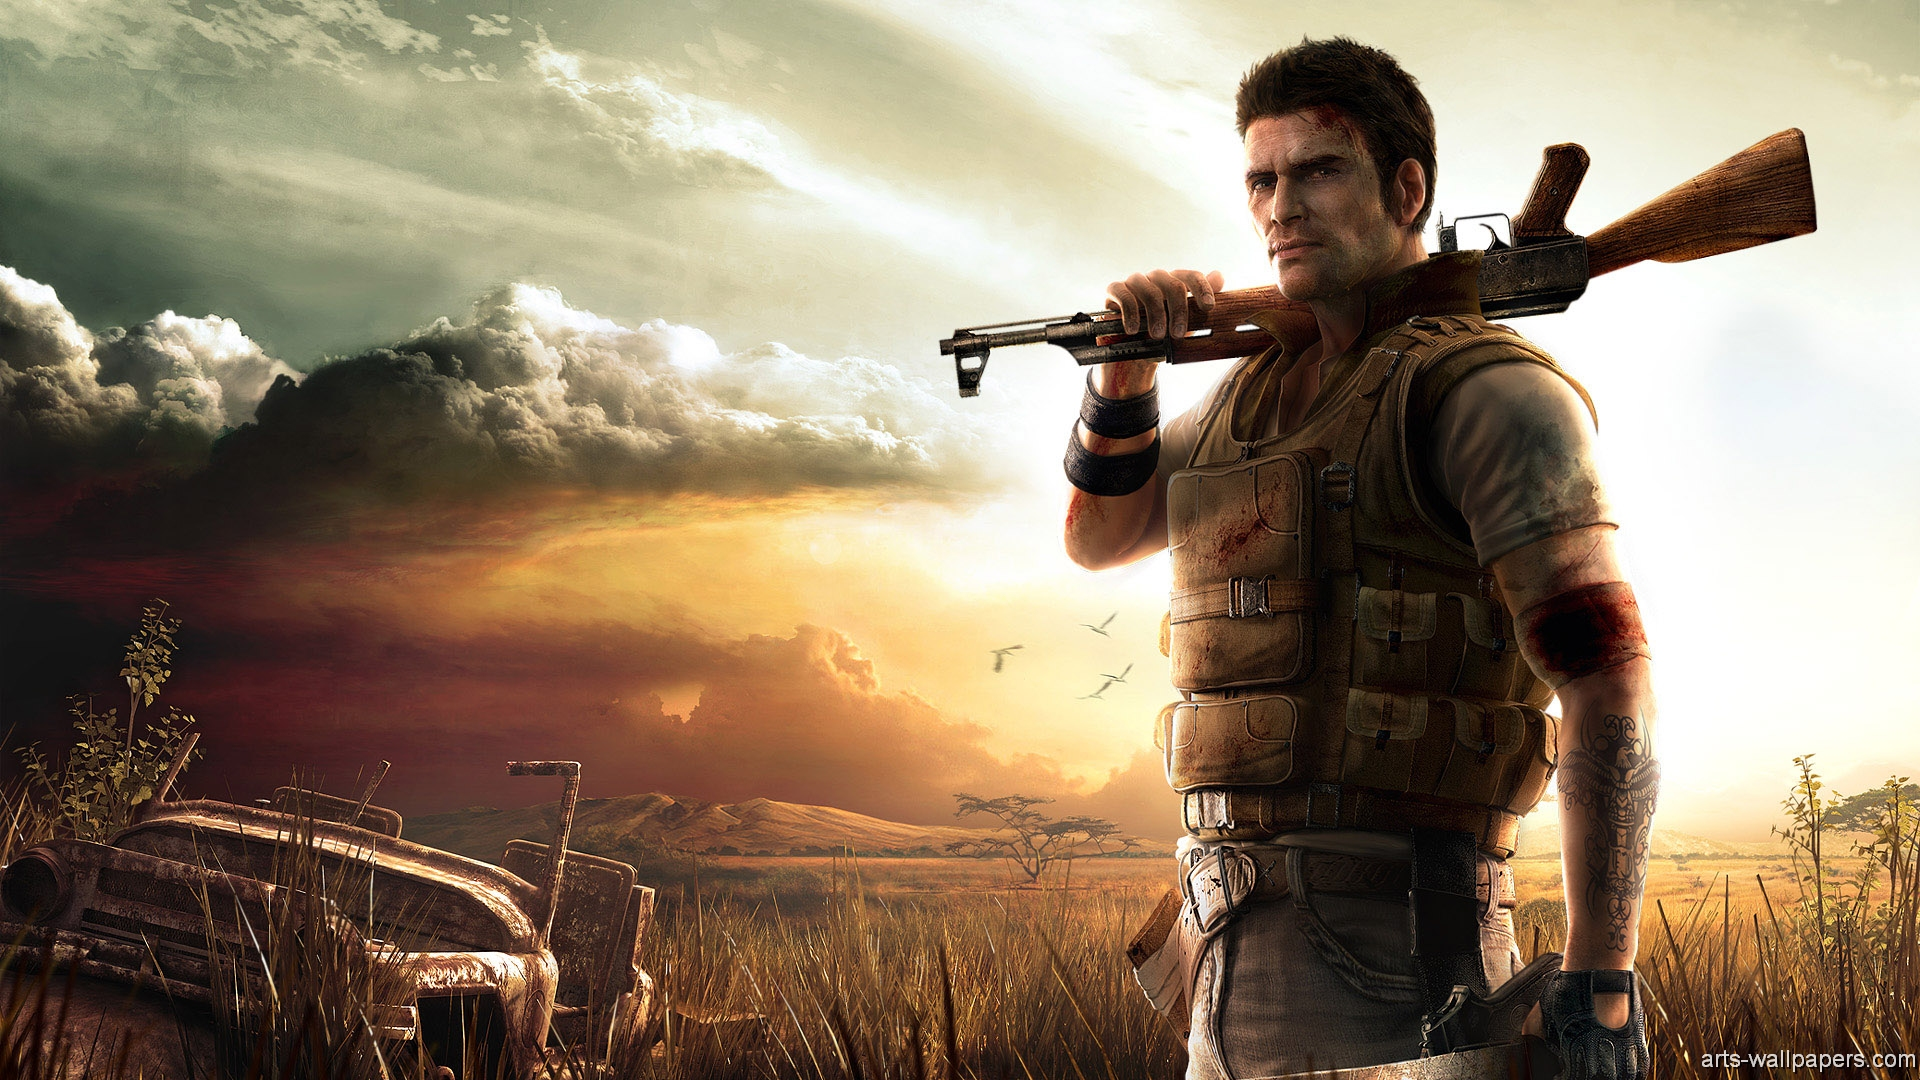 Games HD Wallpapers Games Background Images 1920x1080